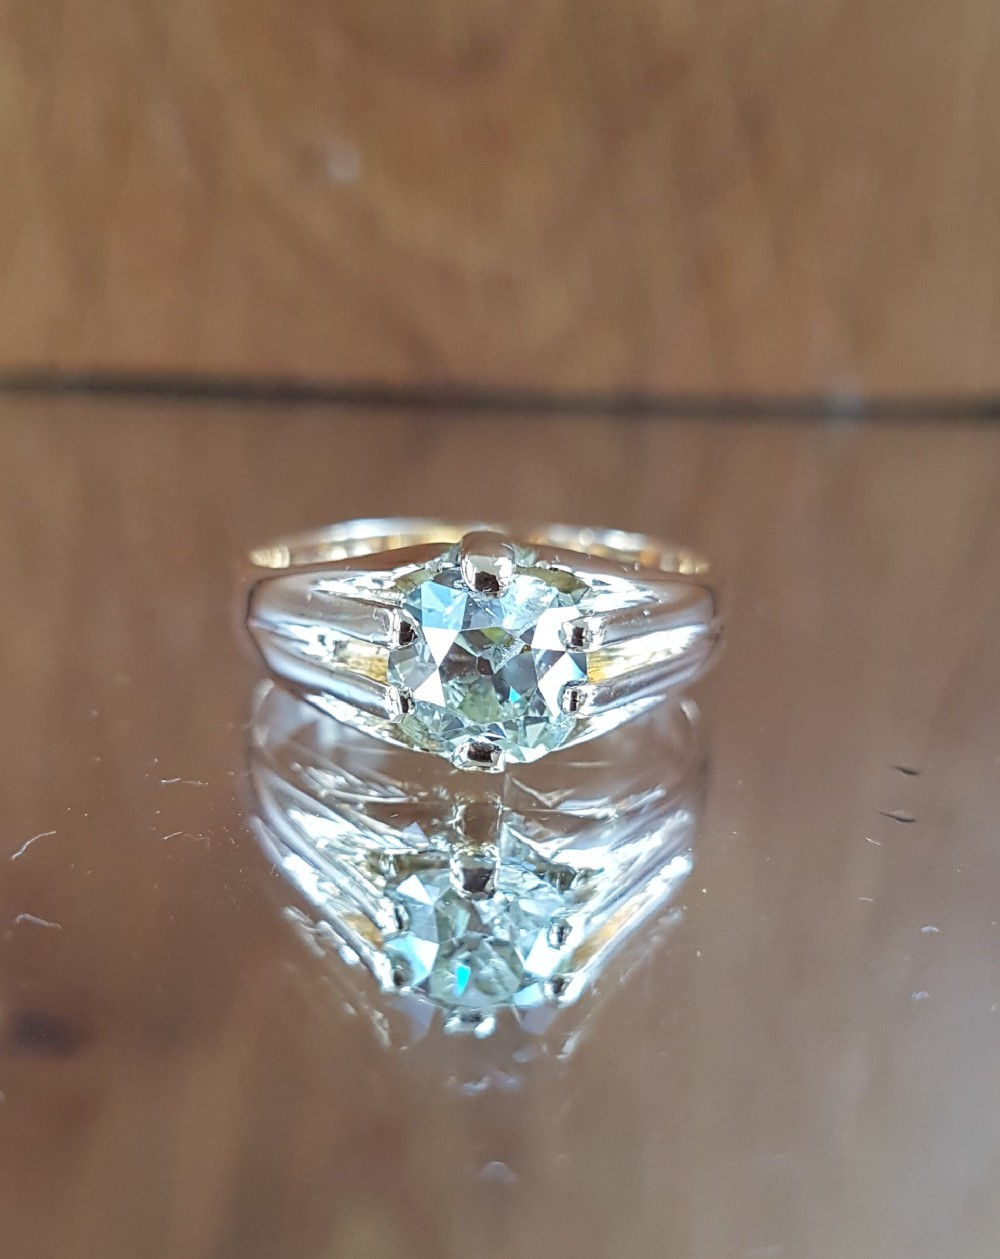 exquisite victorian 18ct gold 130ct old mine cut solitaire diamond ring free sizing